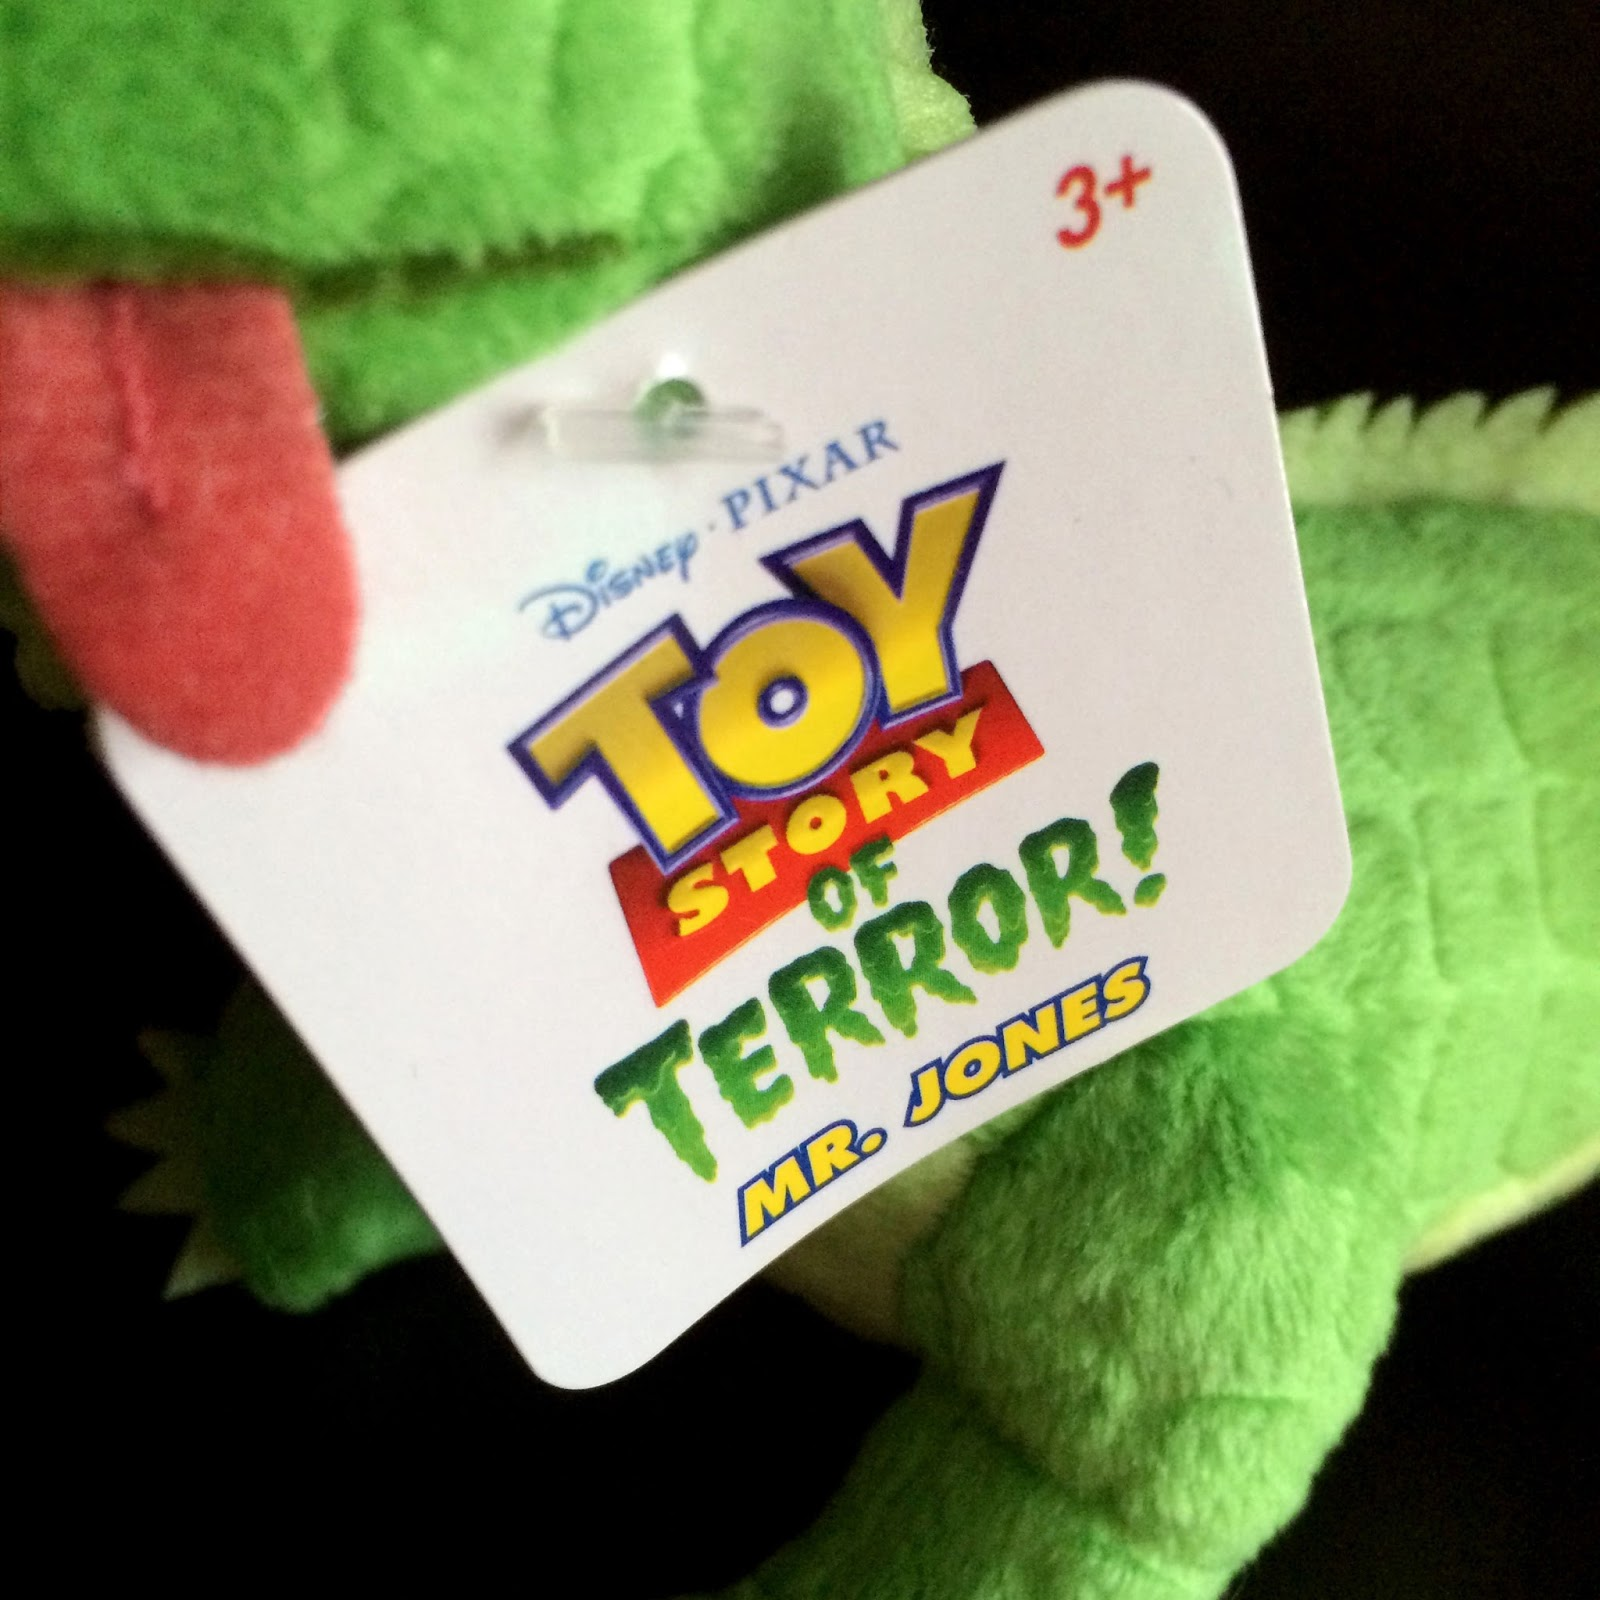 toy story of terror mr. jones plush